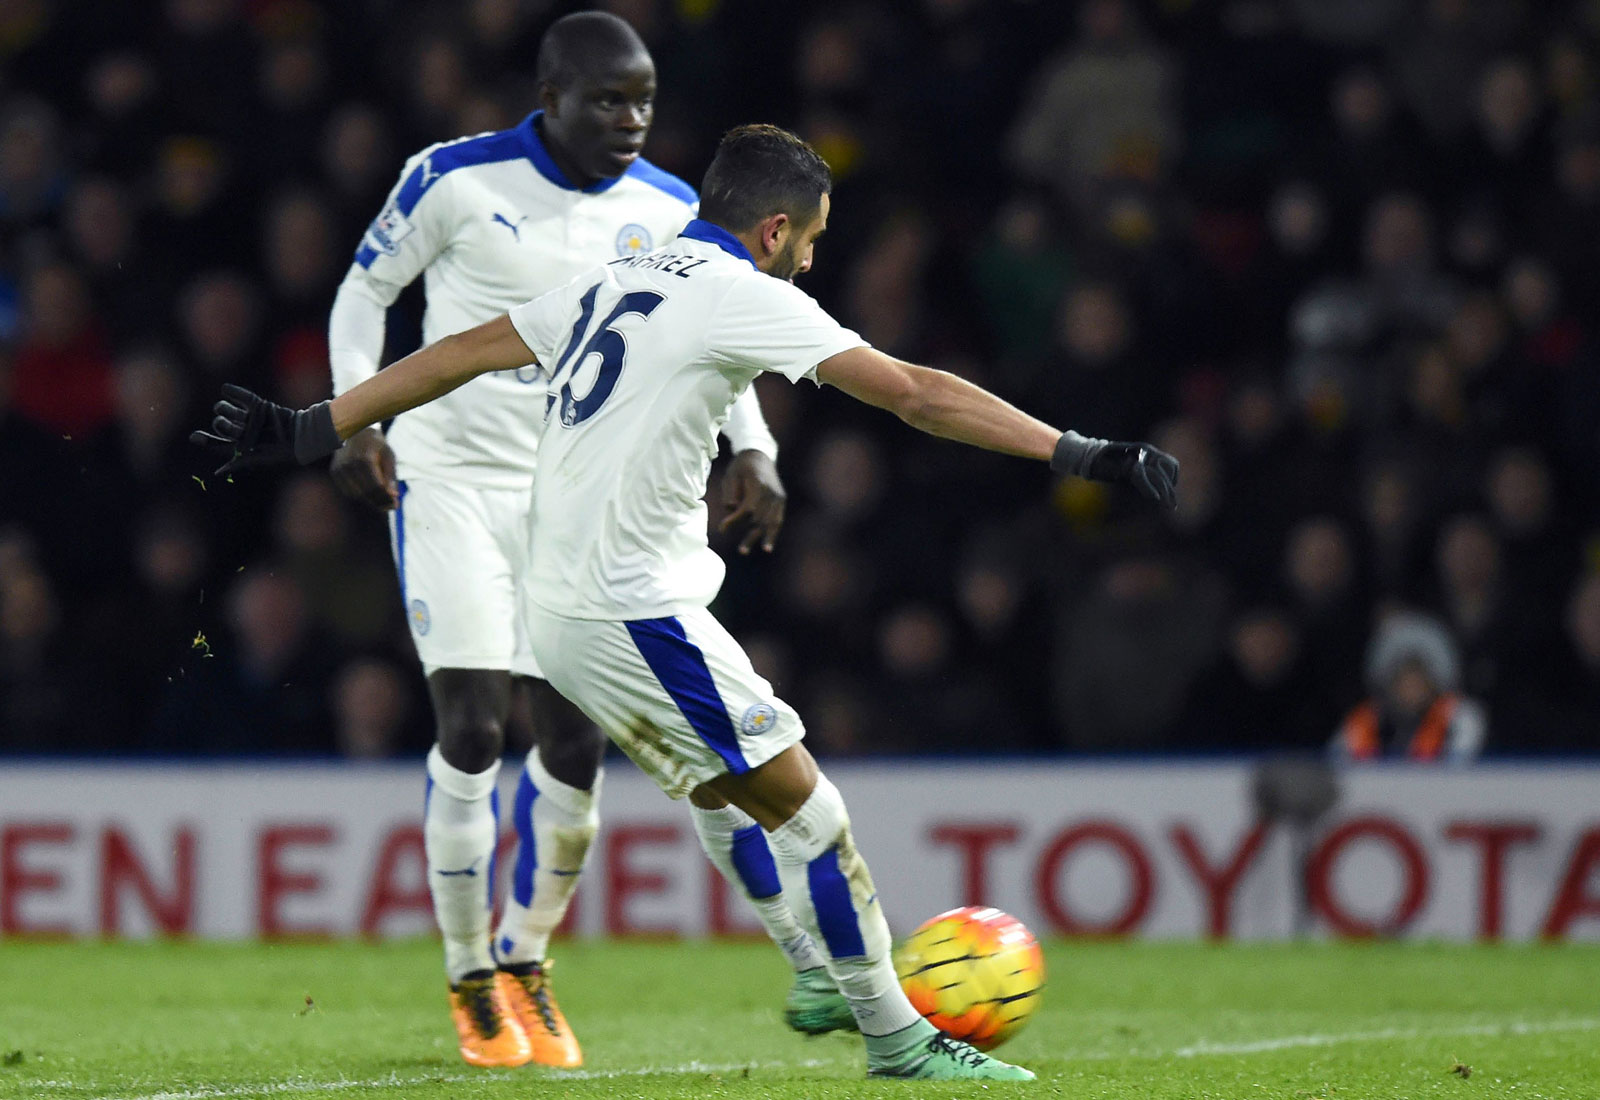 Vital midfielder N'Golo Kante returned from an injury and Riyad Mahrez scored a highlight-reel goal–again–as Leicester won at Watford 1-0 to keep pressure on Tottenham and Arsenal in the title chase. The club's record away from home (11-2-4) is a big driver of its overall success.